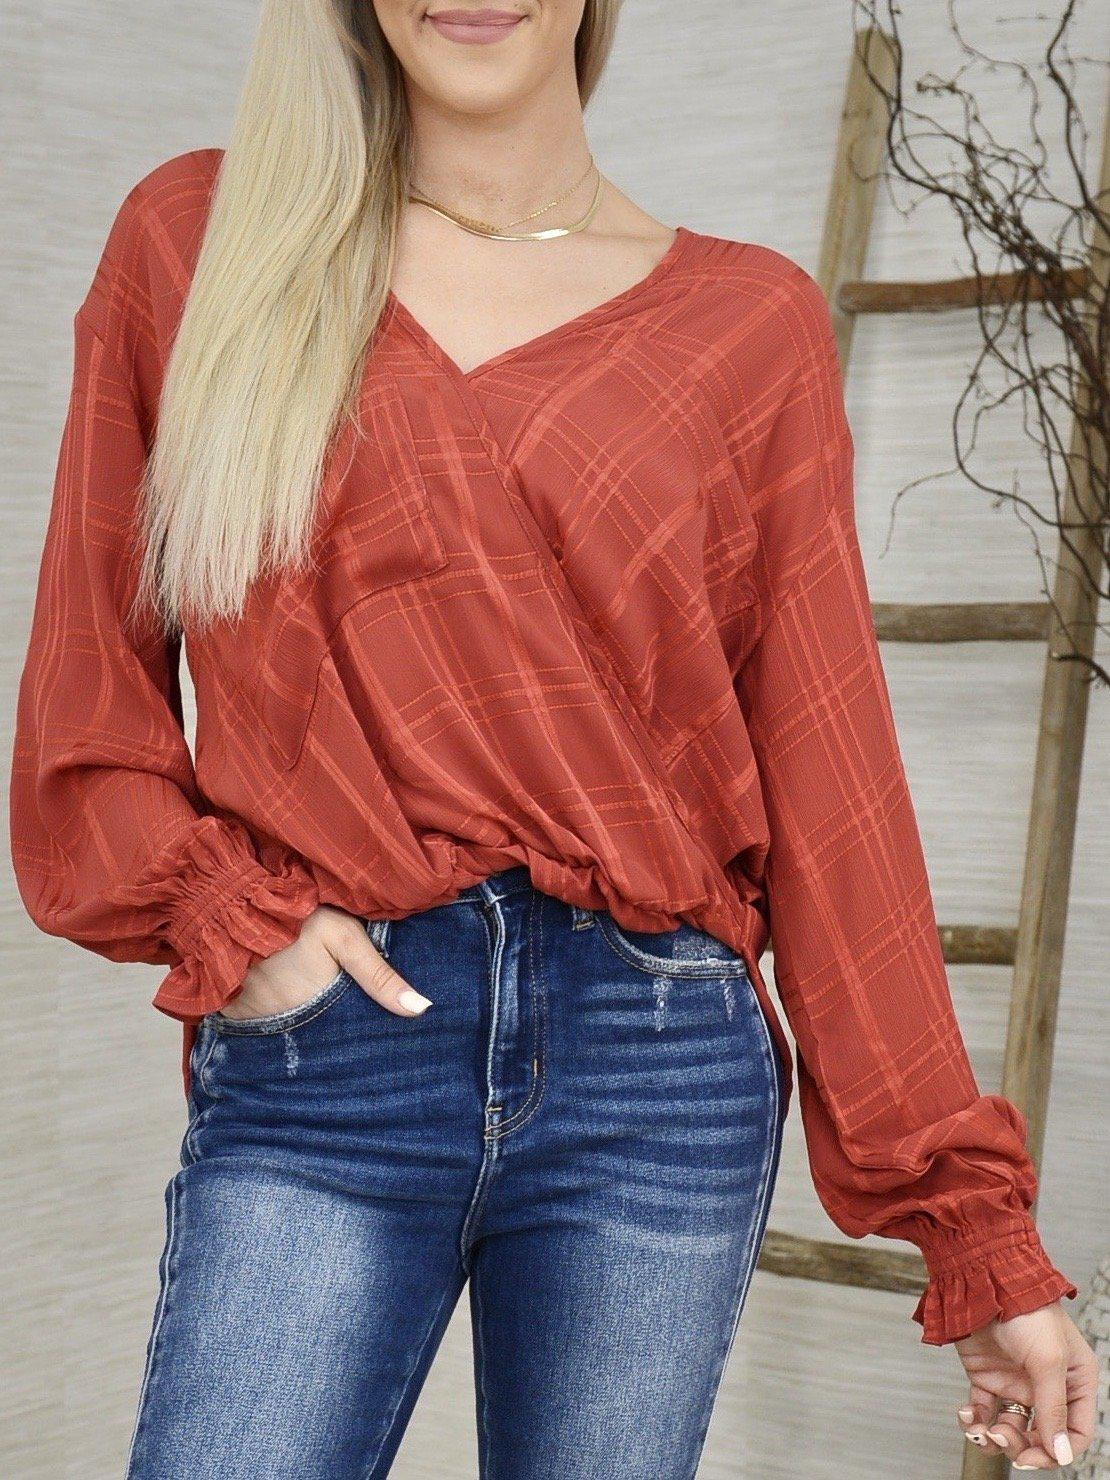 Simi Valley Top-Women's -New Arrivals-Runway Seven